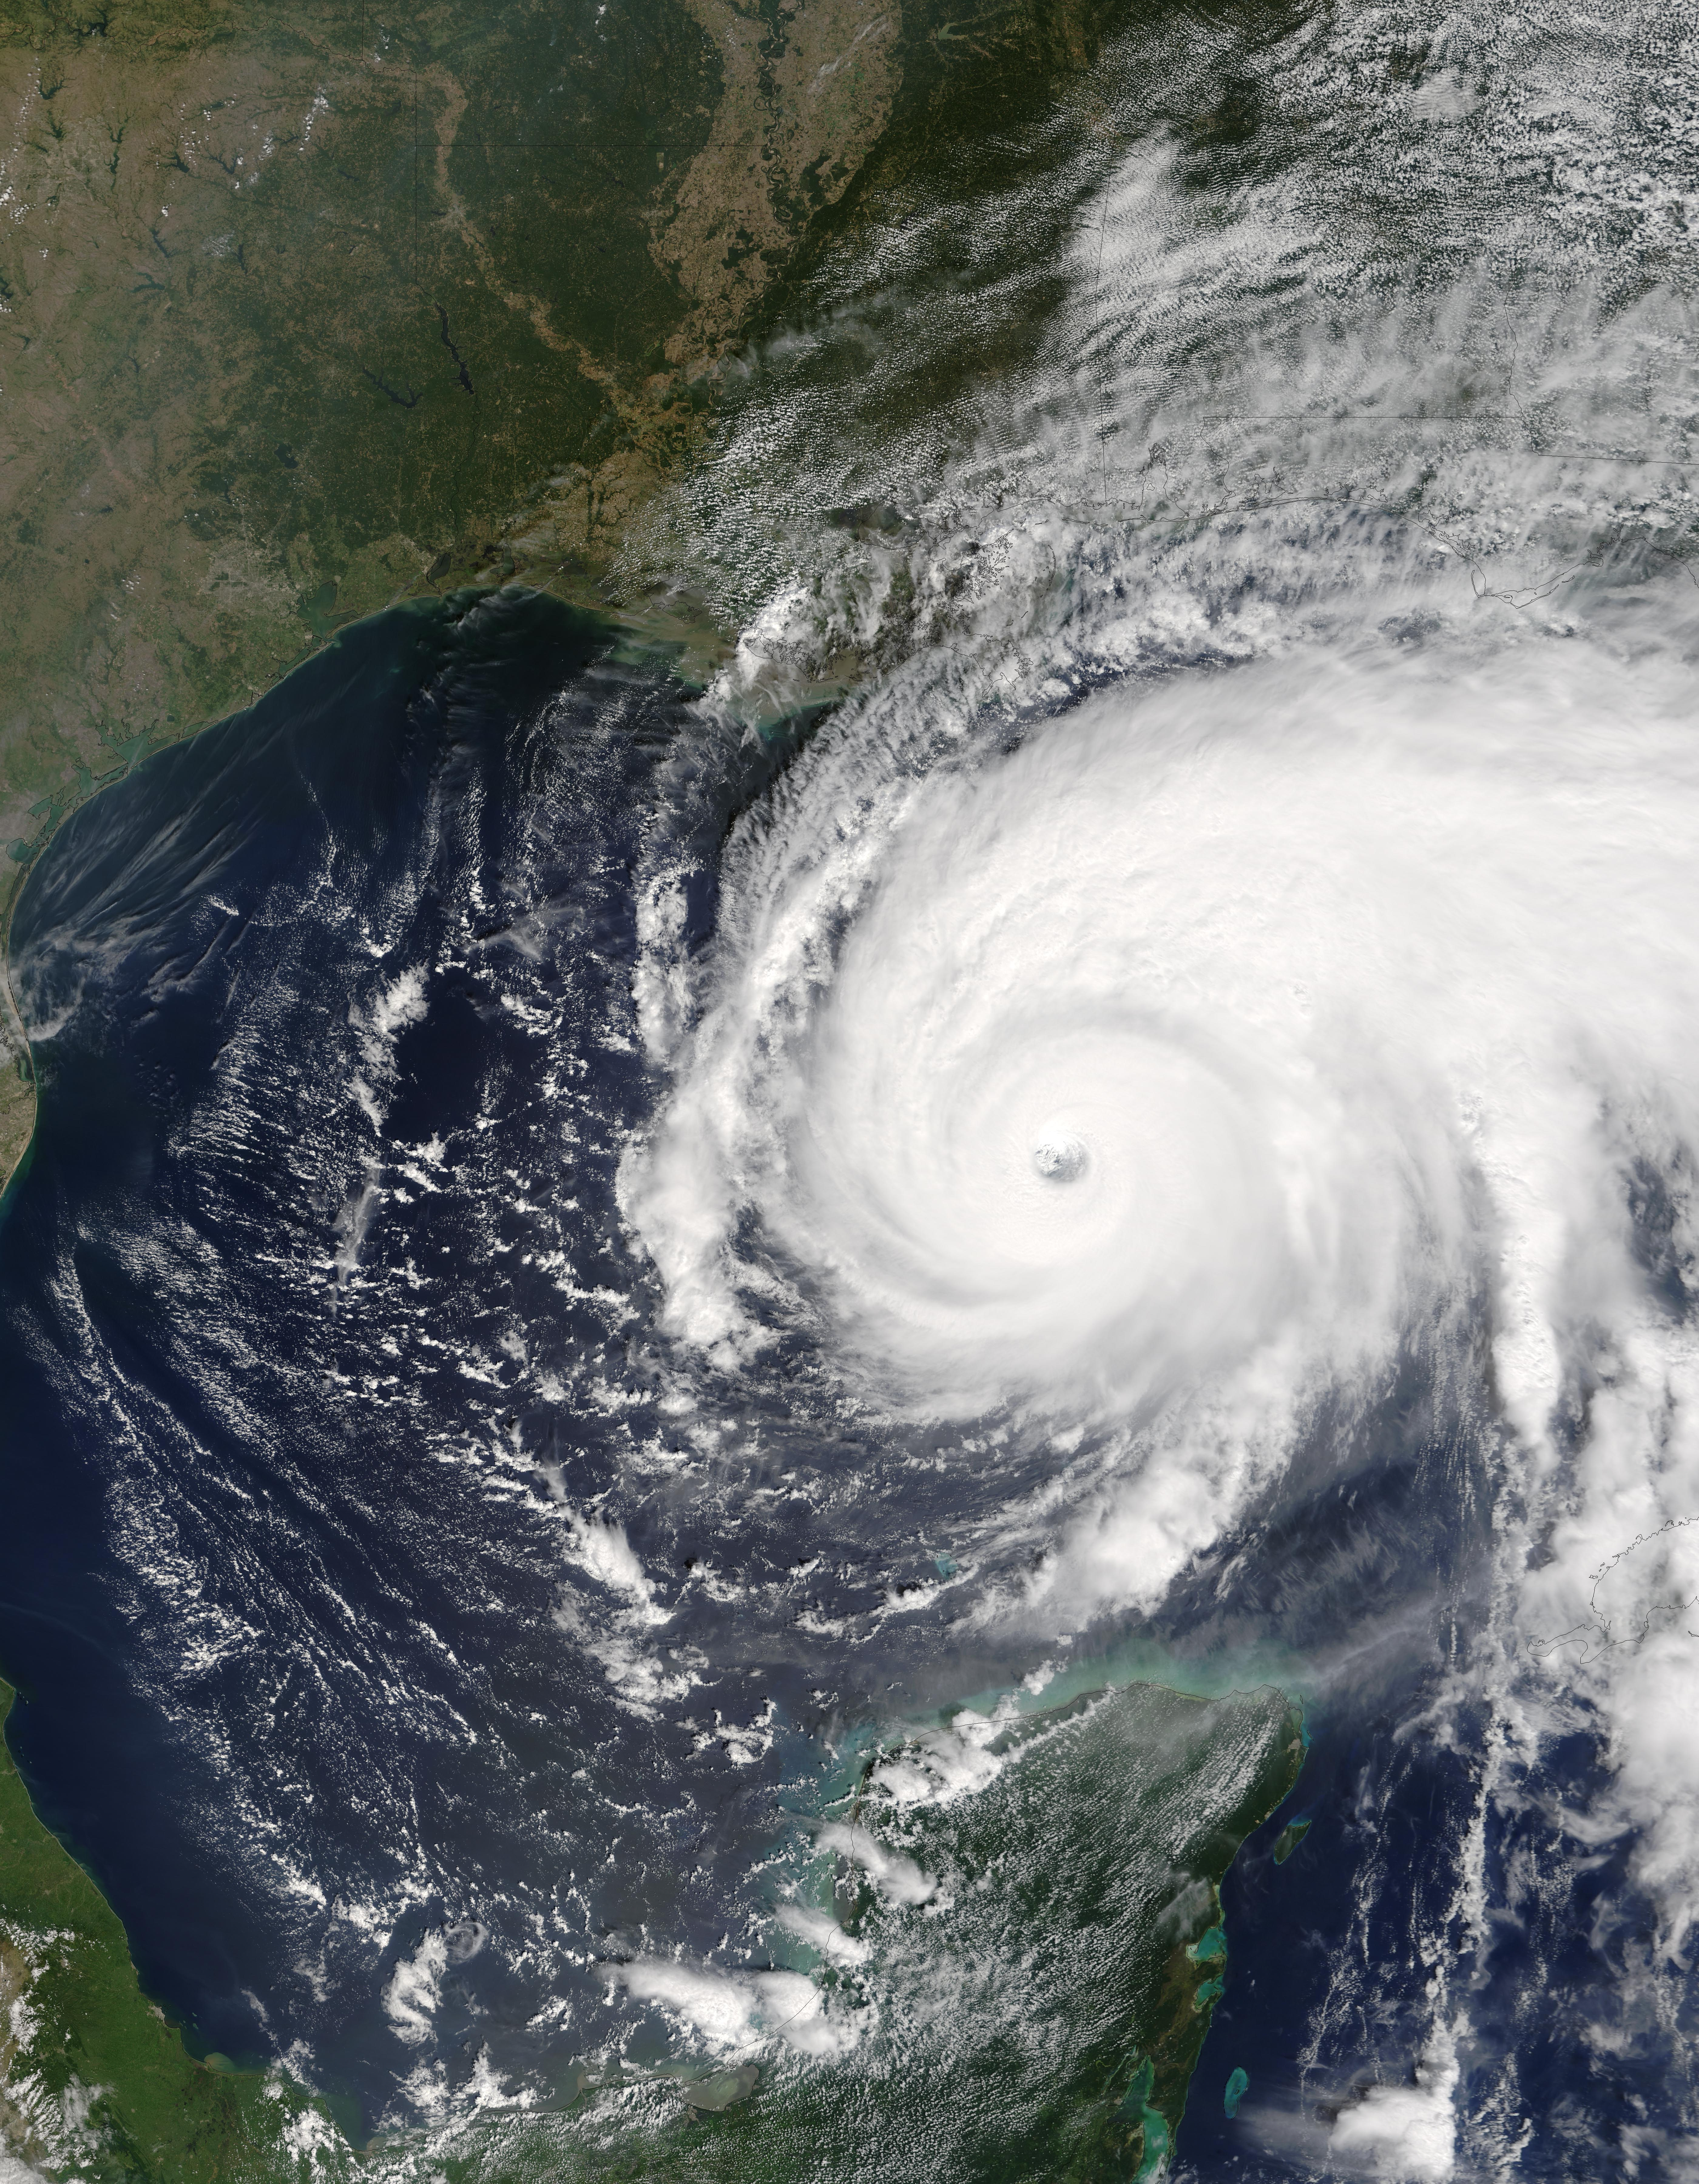 hurricane katrina nasa earth observatory - photo #35